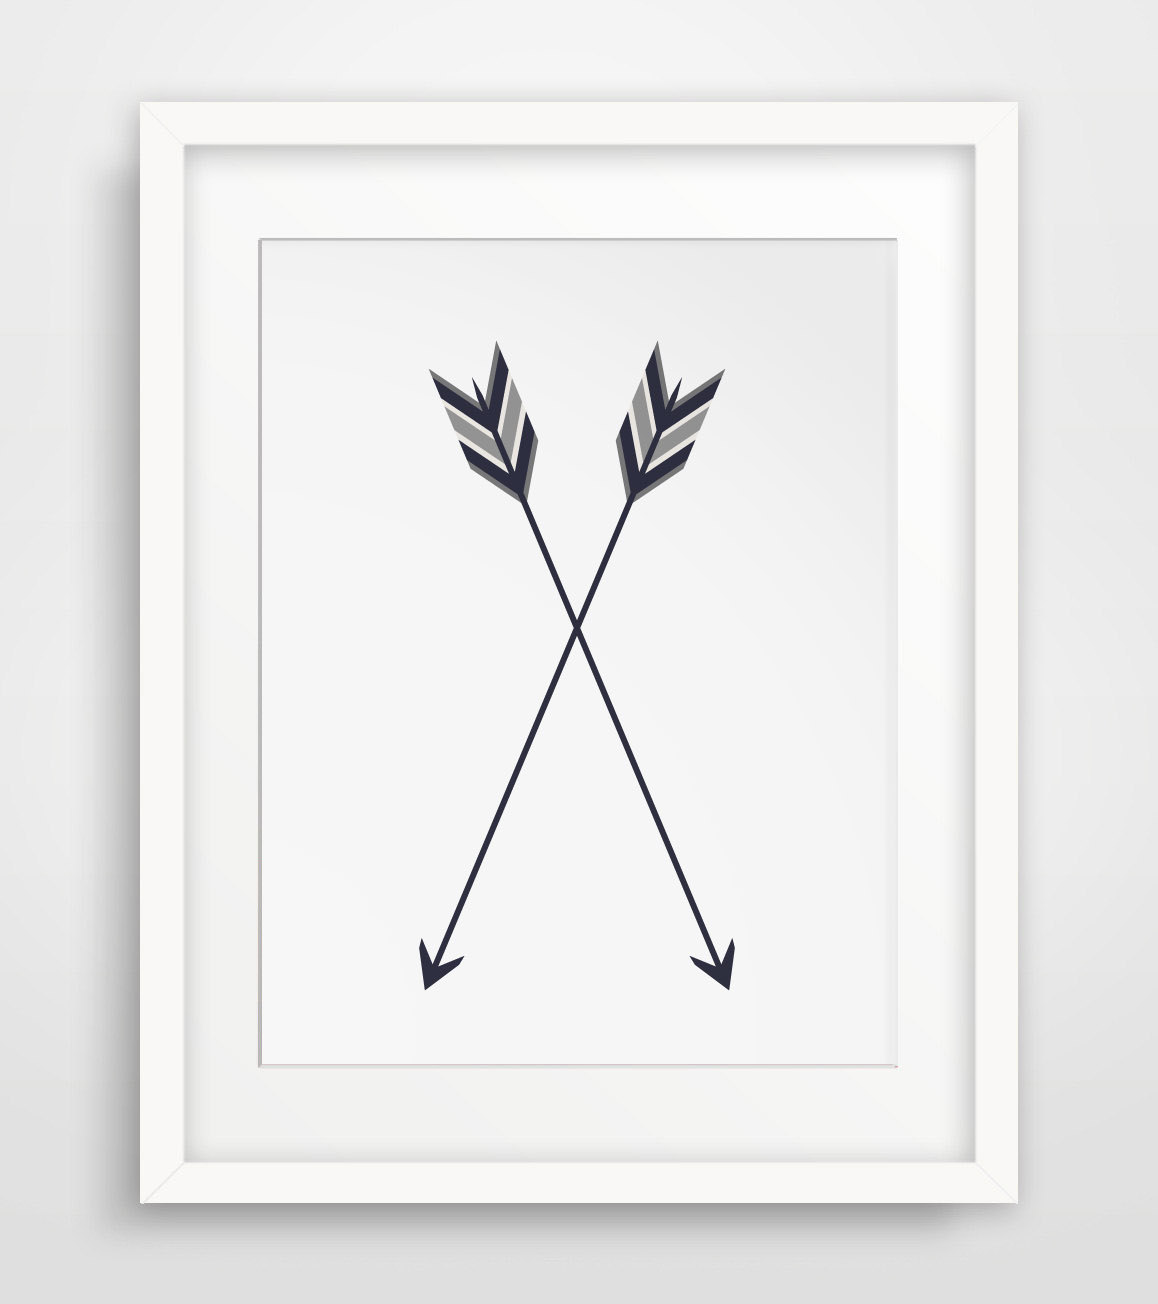 Arrow artwork graphic freeuse download 10+ images about Drawing on Pinterest | Geometric heart, Geometric ... graphic freeuse download